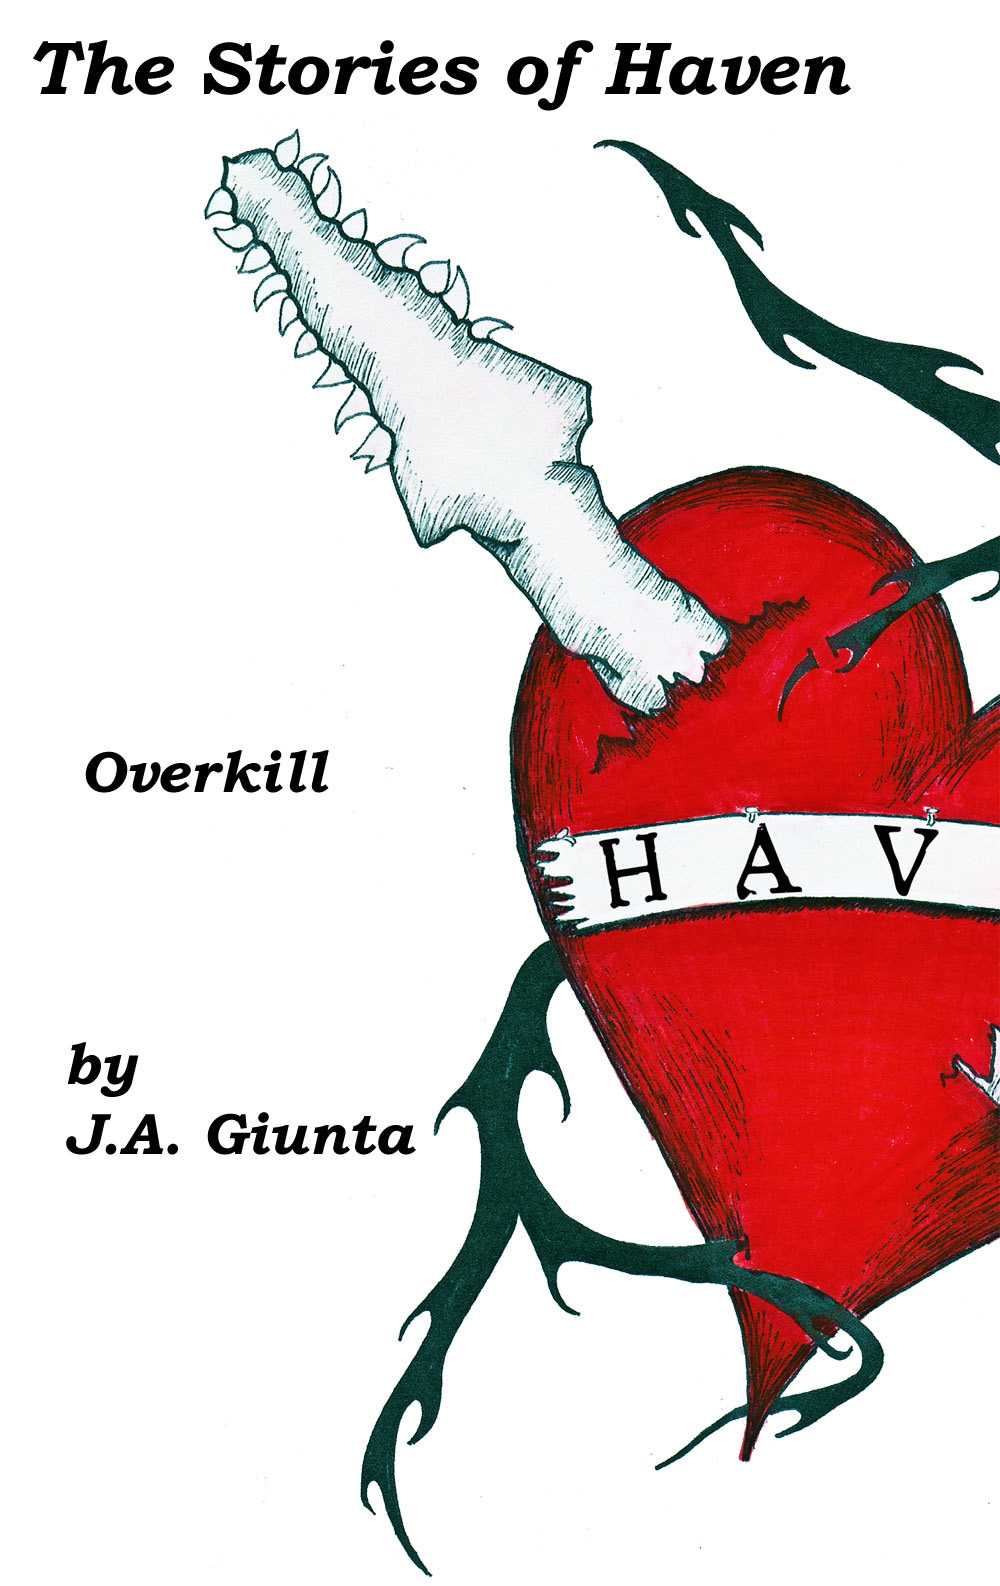 The Stories of Haven: Overkill By: J.A. Giunta